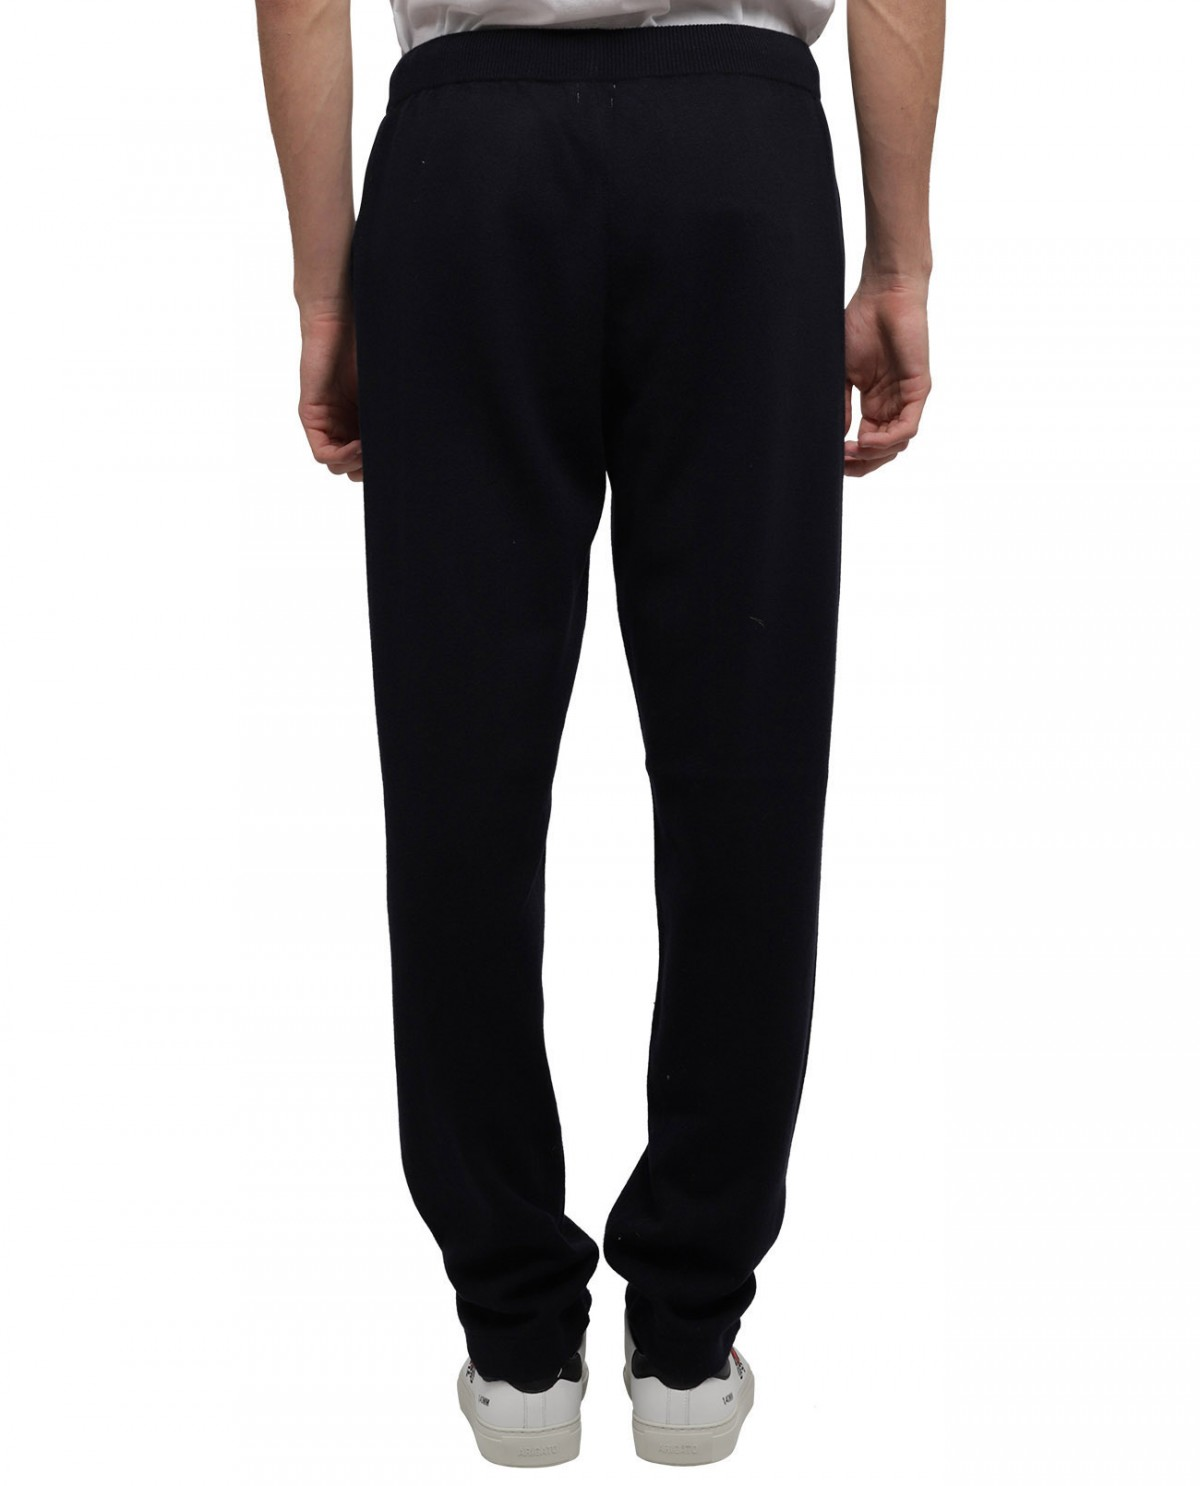 A.B.C.L. striped Coulisse trousers